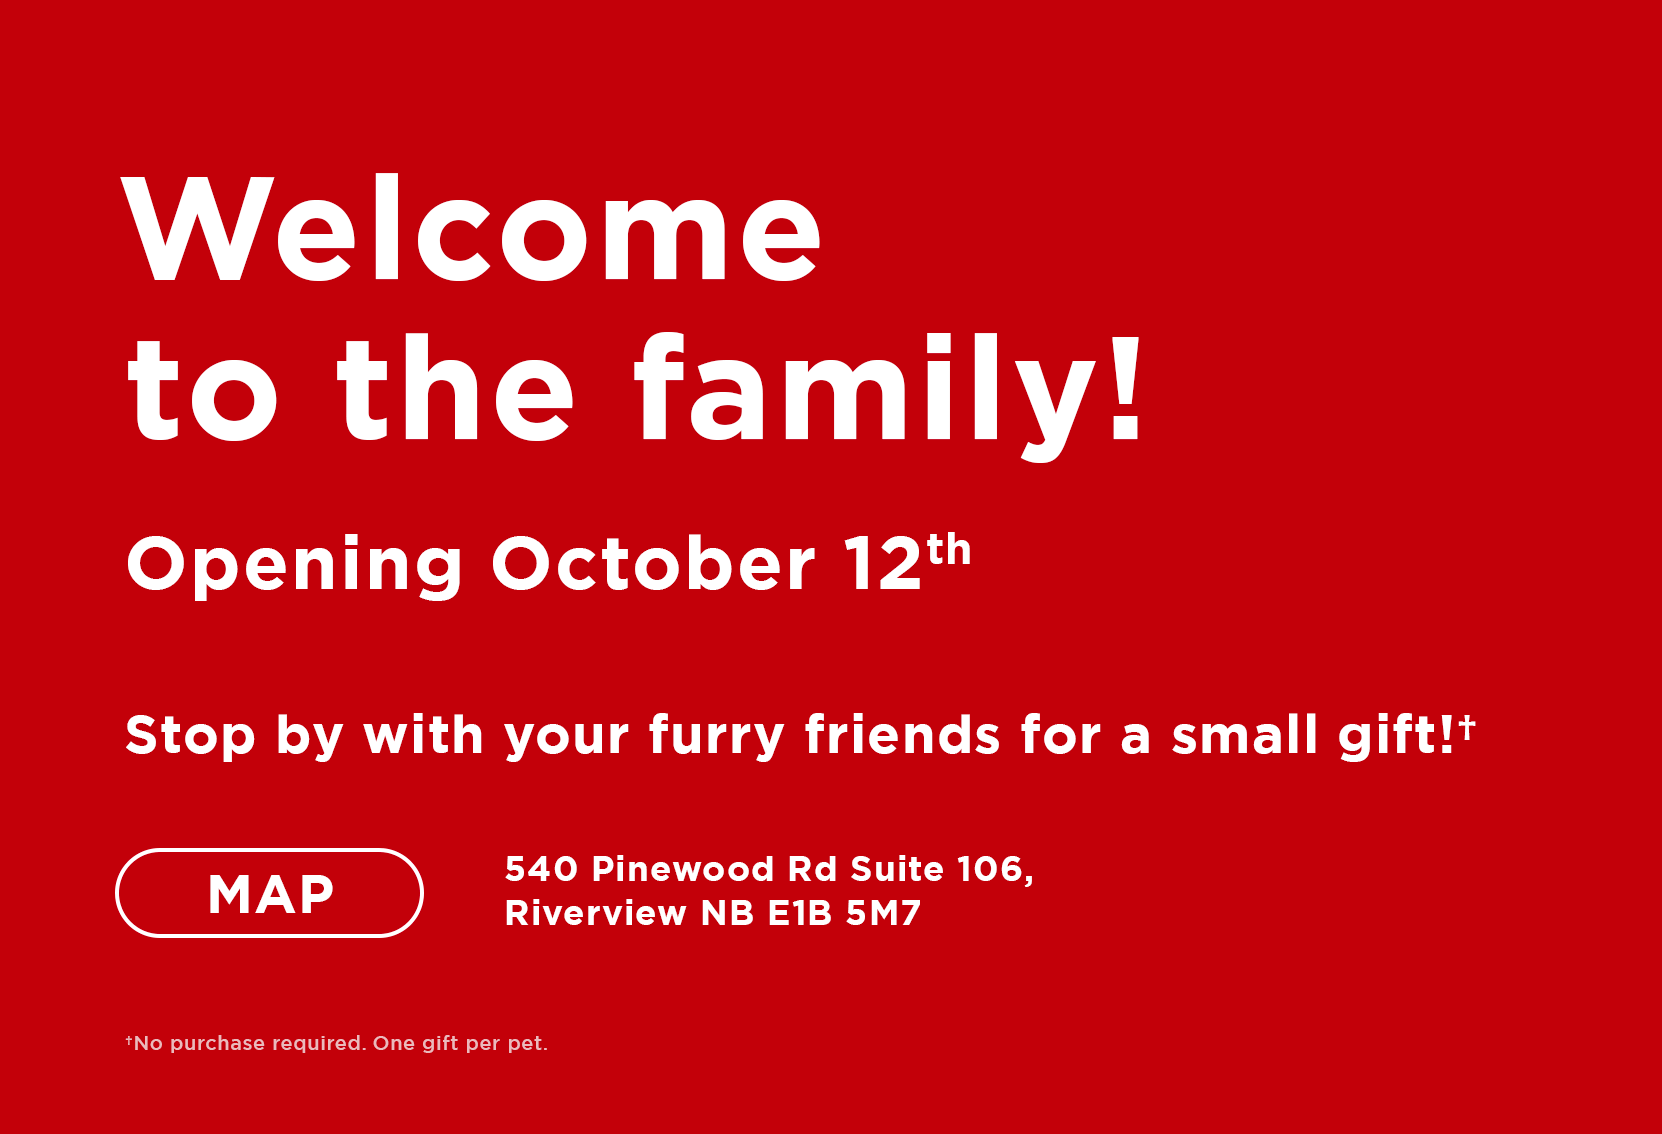 Welcome to the family! Opening October 12th Stop by with your furry friends for a free treat! 540 Pinewood Rd Suite 106, Riverview NB E1B 5M7